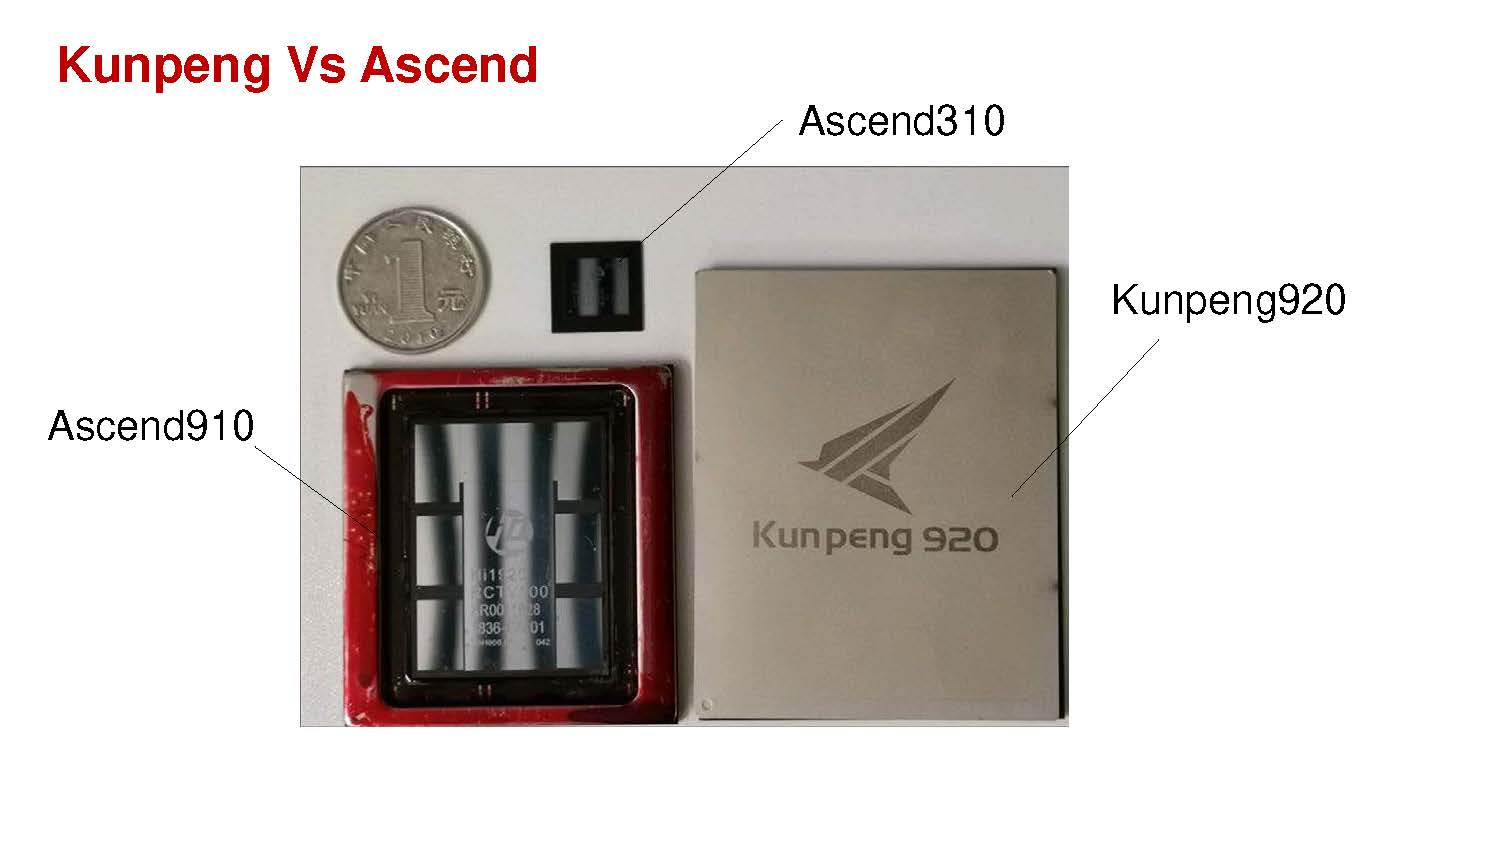 Huawei Ascend 910 310 And Kunpeng 920